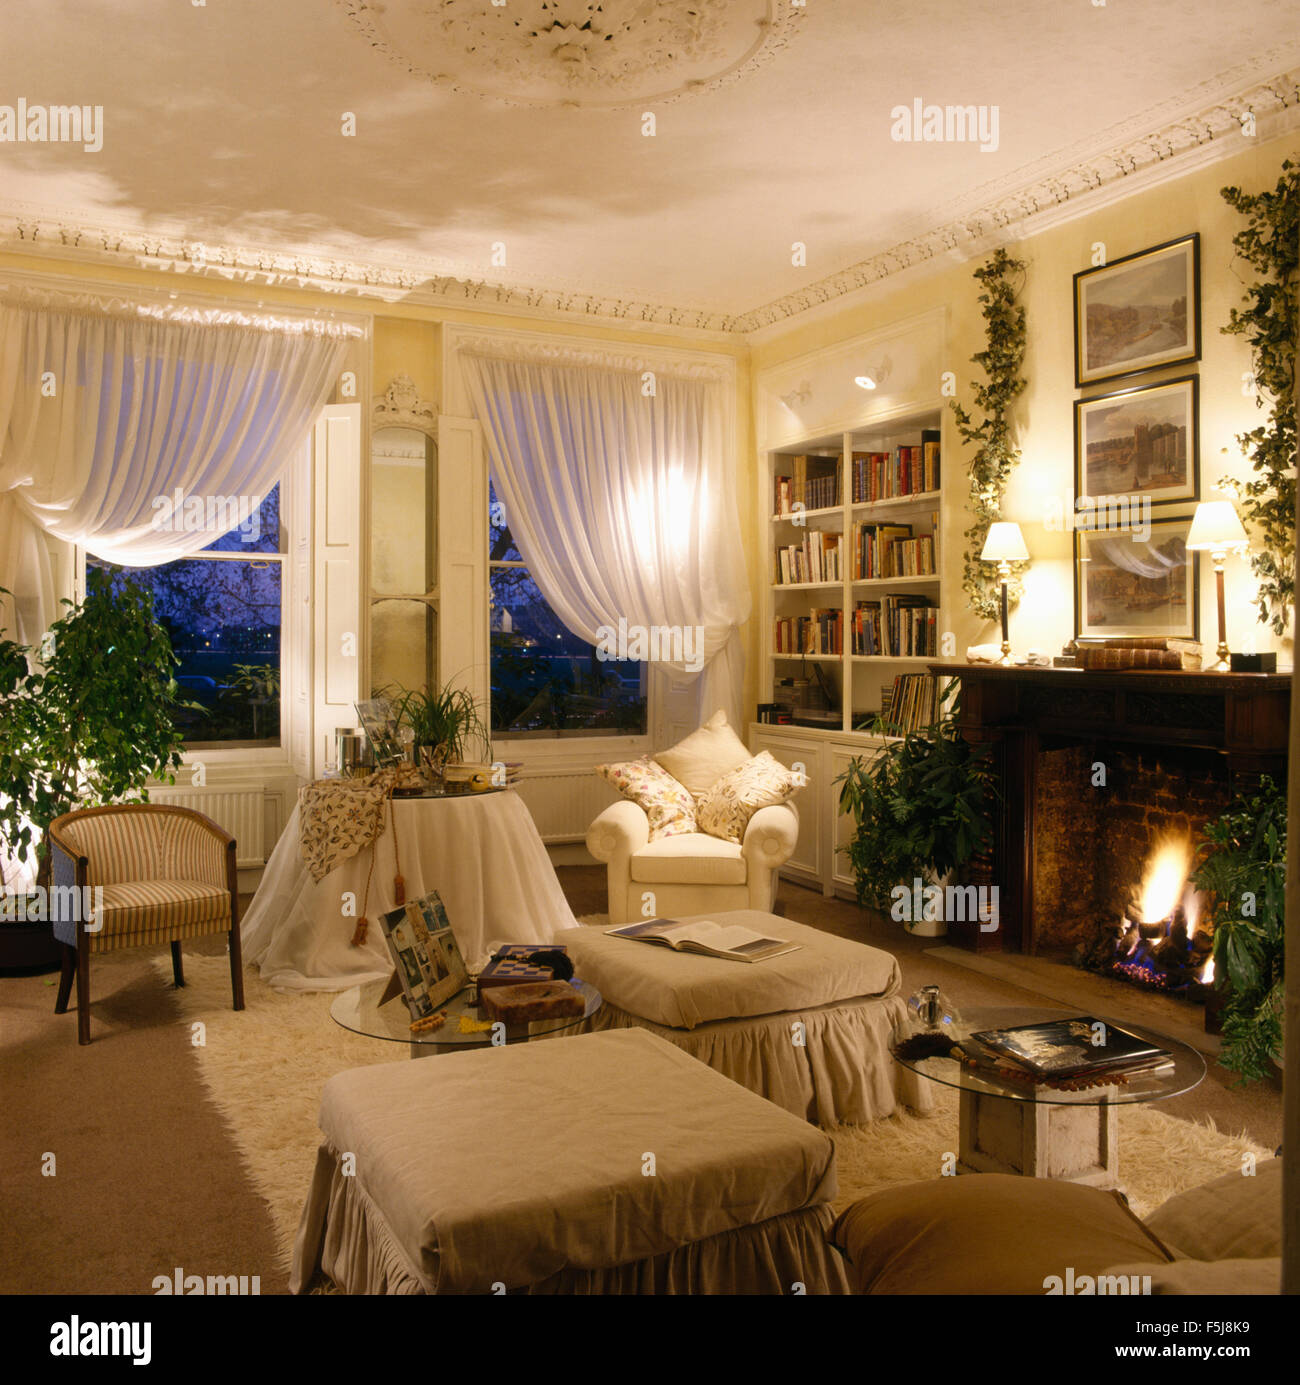 White voile drapes on windows in eighties apartment living room with lighted fire in fireplace - Stock Image